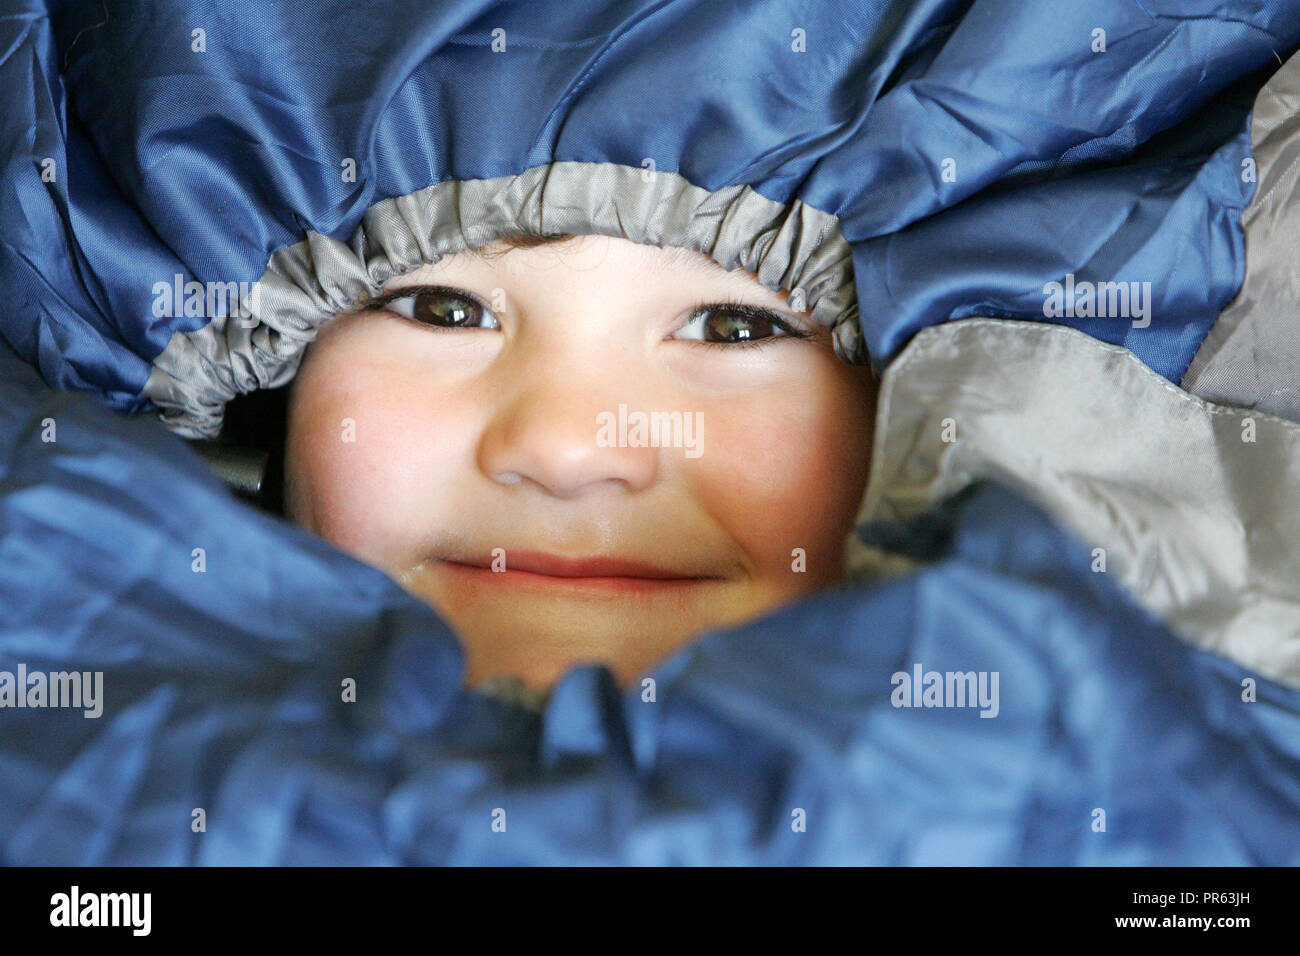 Young boy snug in a sleeping bag - Stock Image